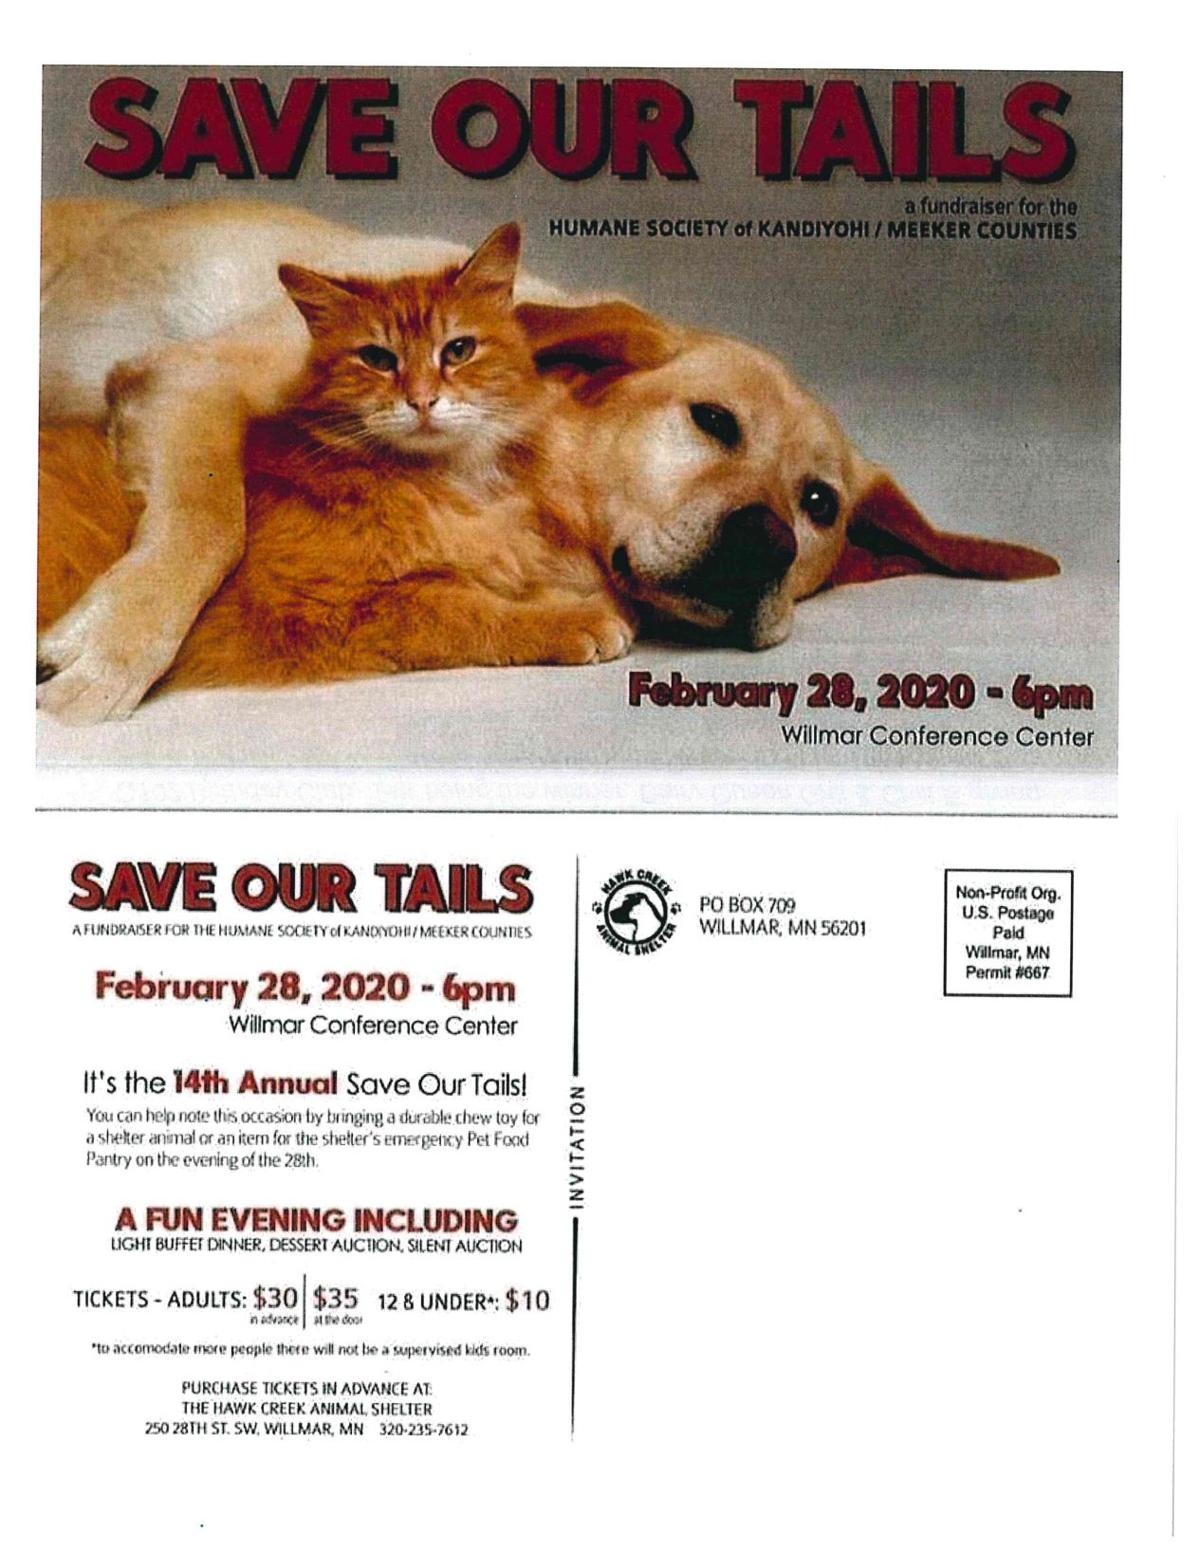 Save Our Tails